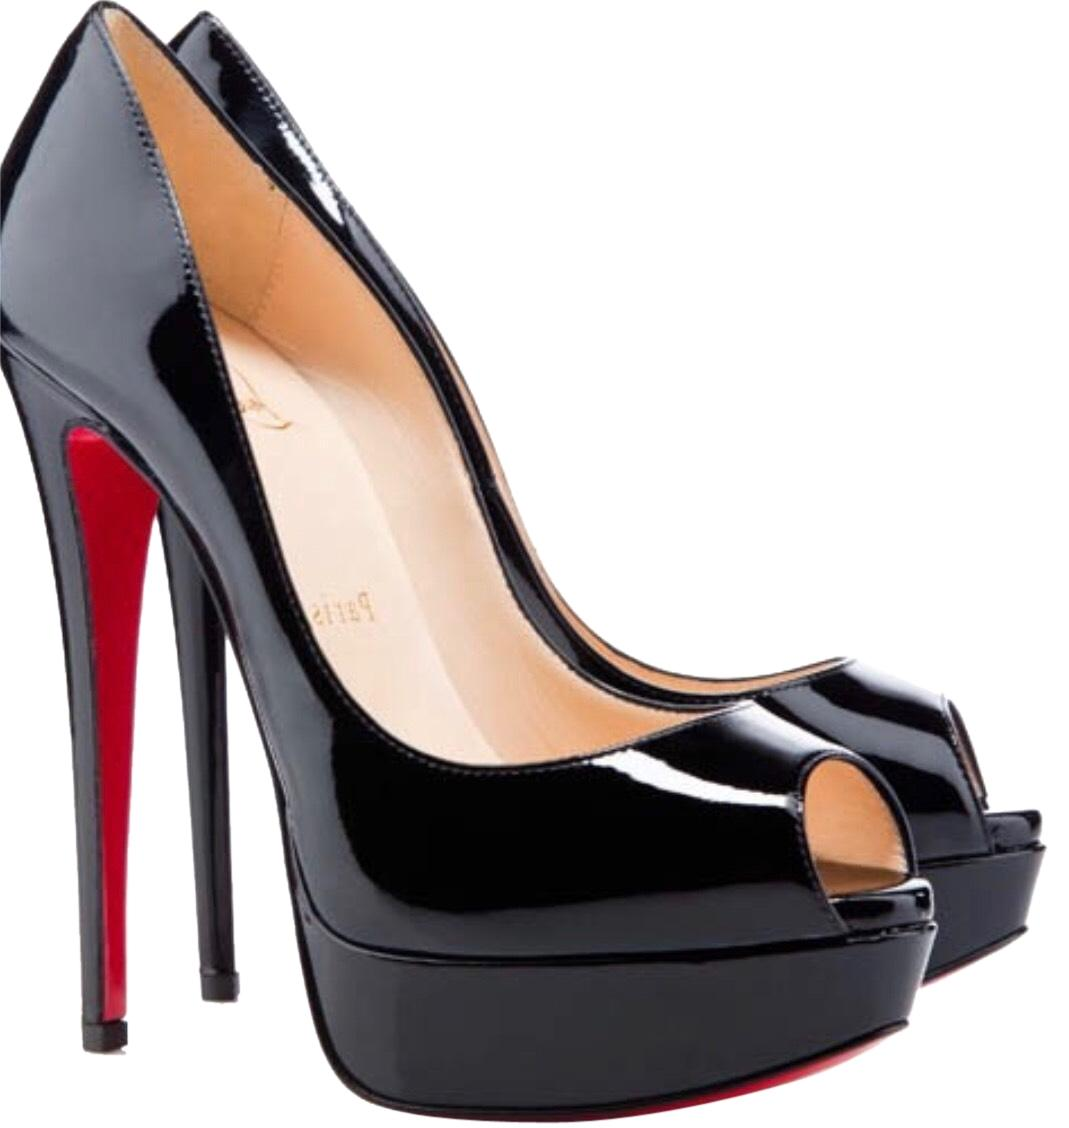 Christian Louboutin Black Platforms Size EU 39 (Approx. US 9) Regular (M, B)